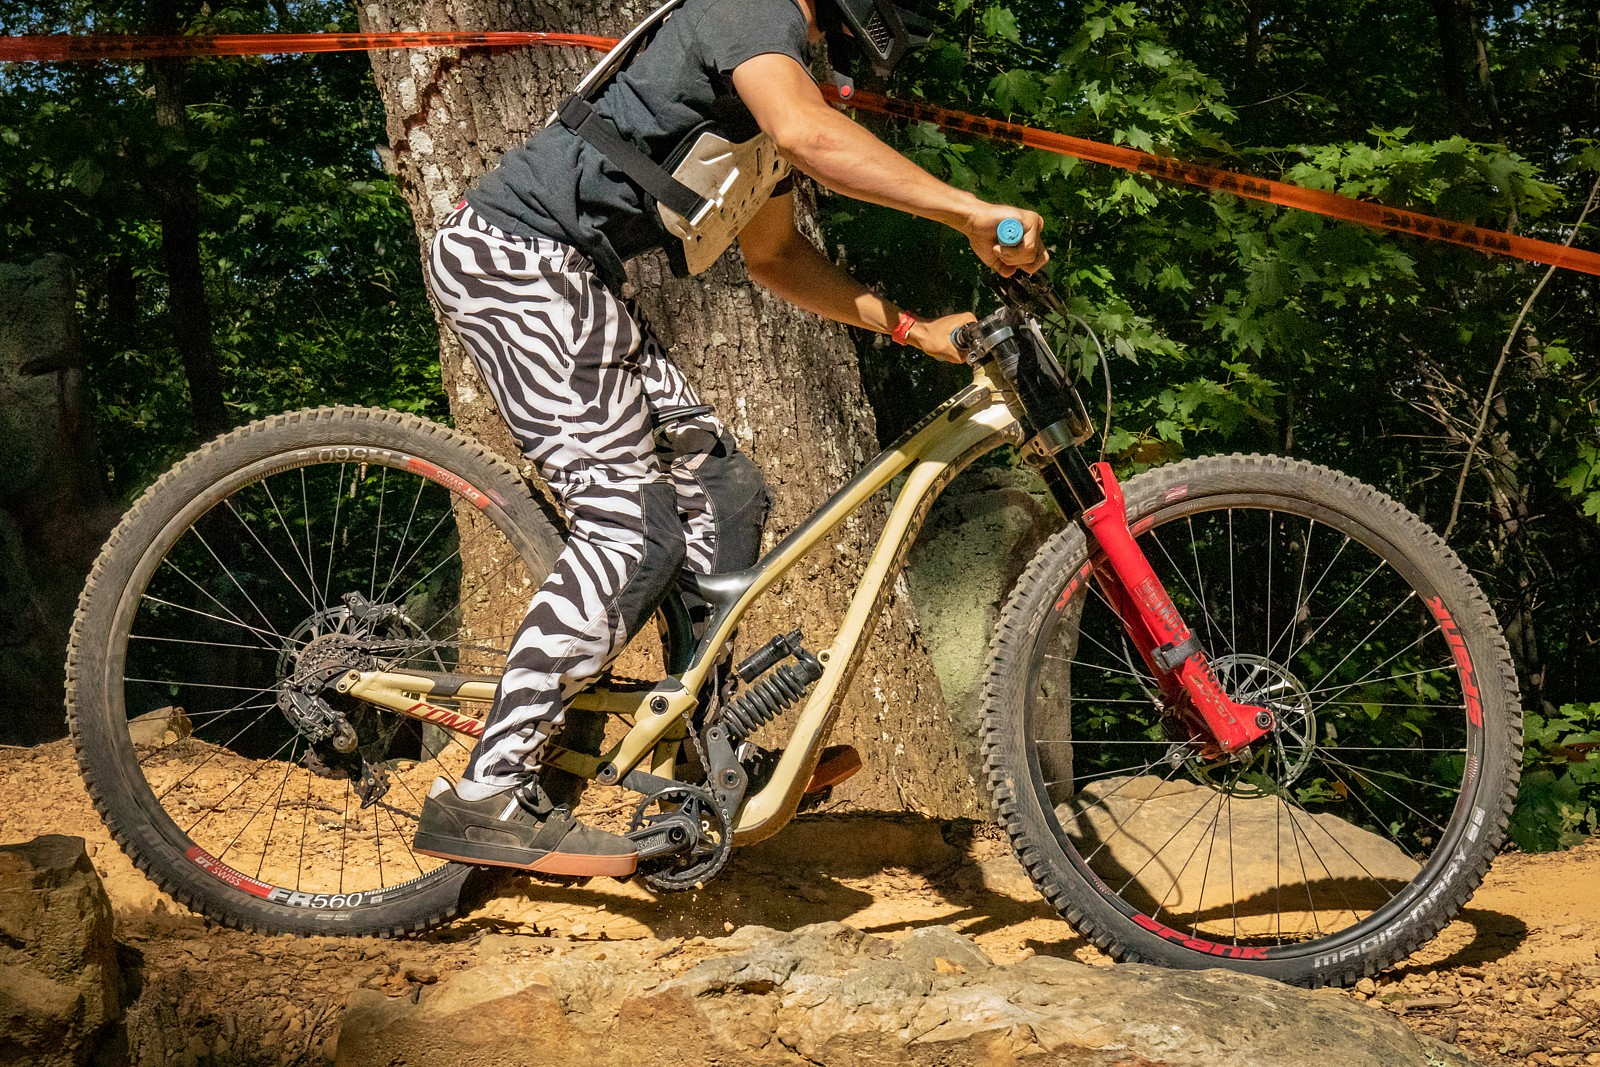 G-OUT PROJECT - DHSE #2 - Commencal  - JackRice - Mountain Biking Pictures - Vital MTB